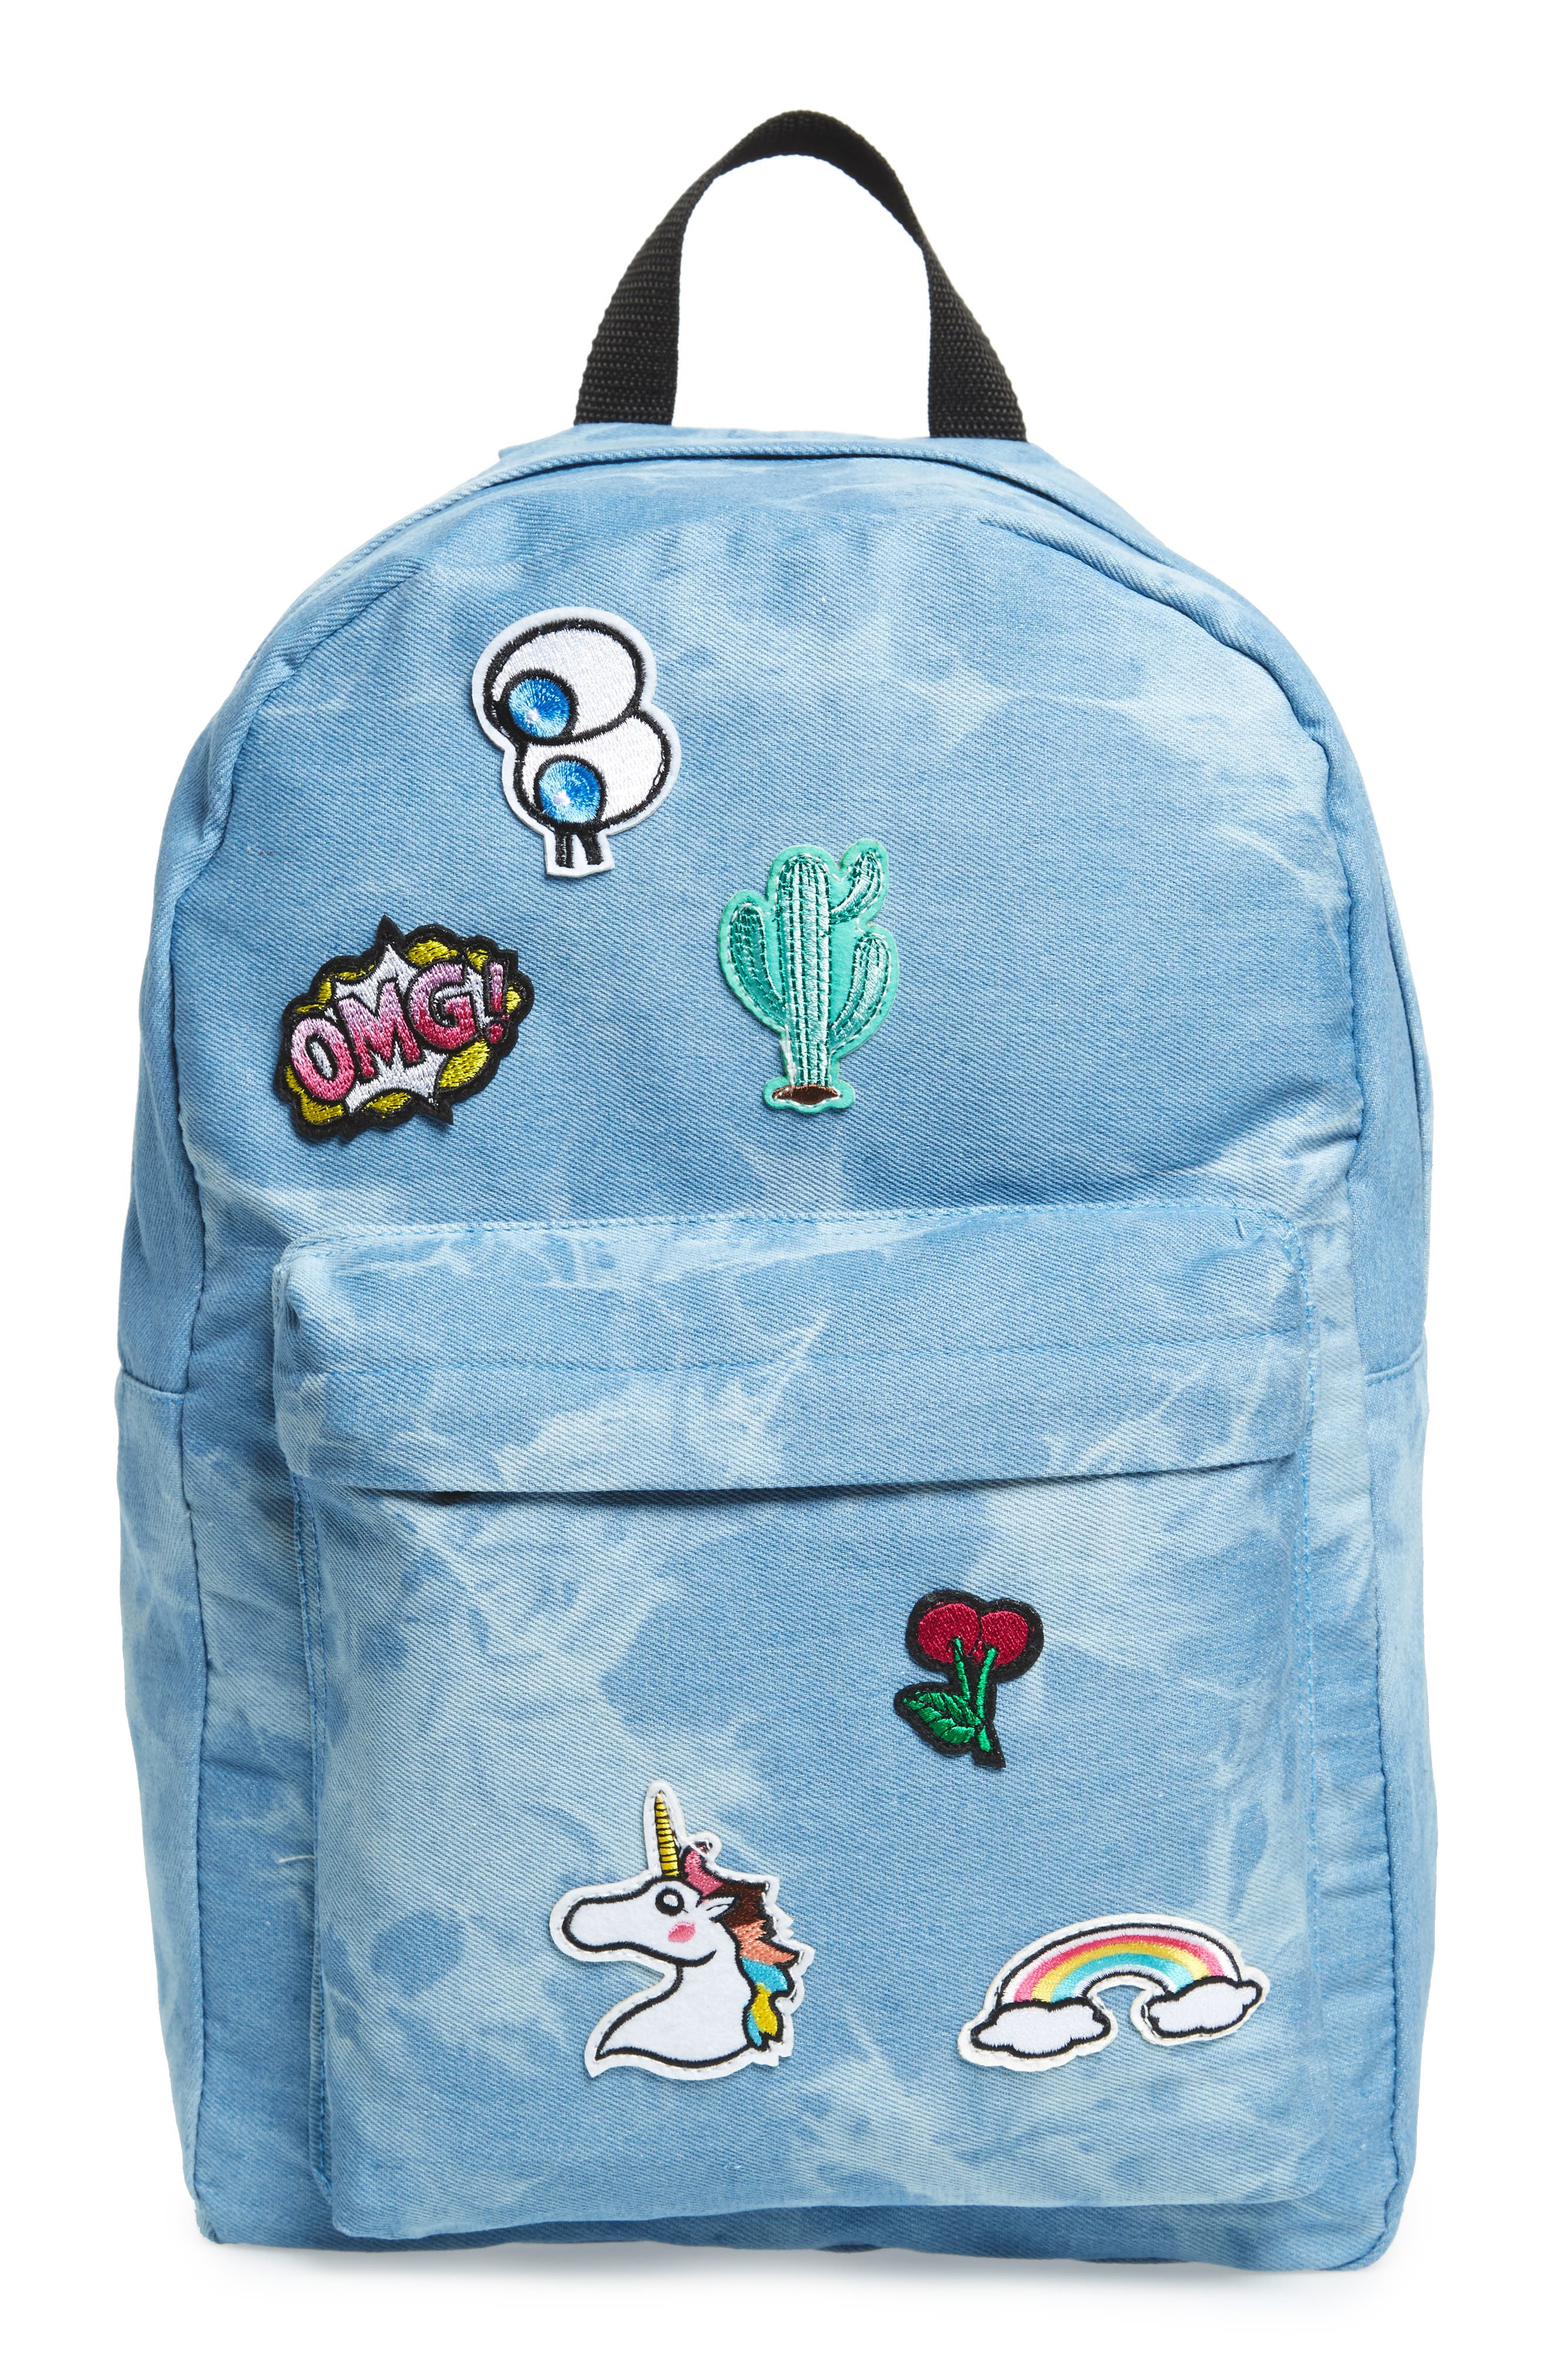 Accessory Collective Tie Dye Backpack,                             Main thumbnail 1, color,                             400